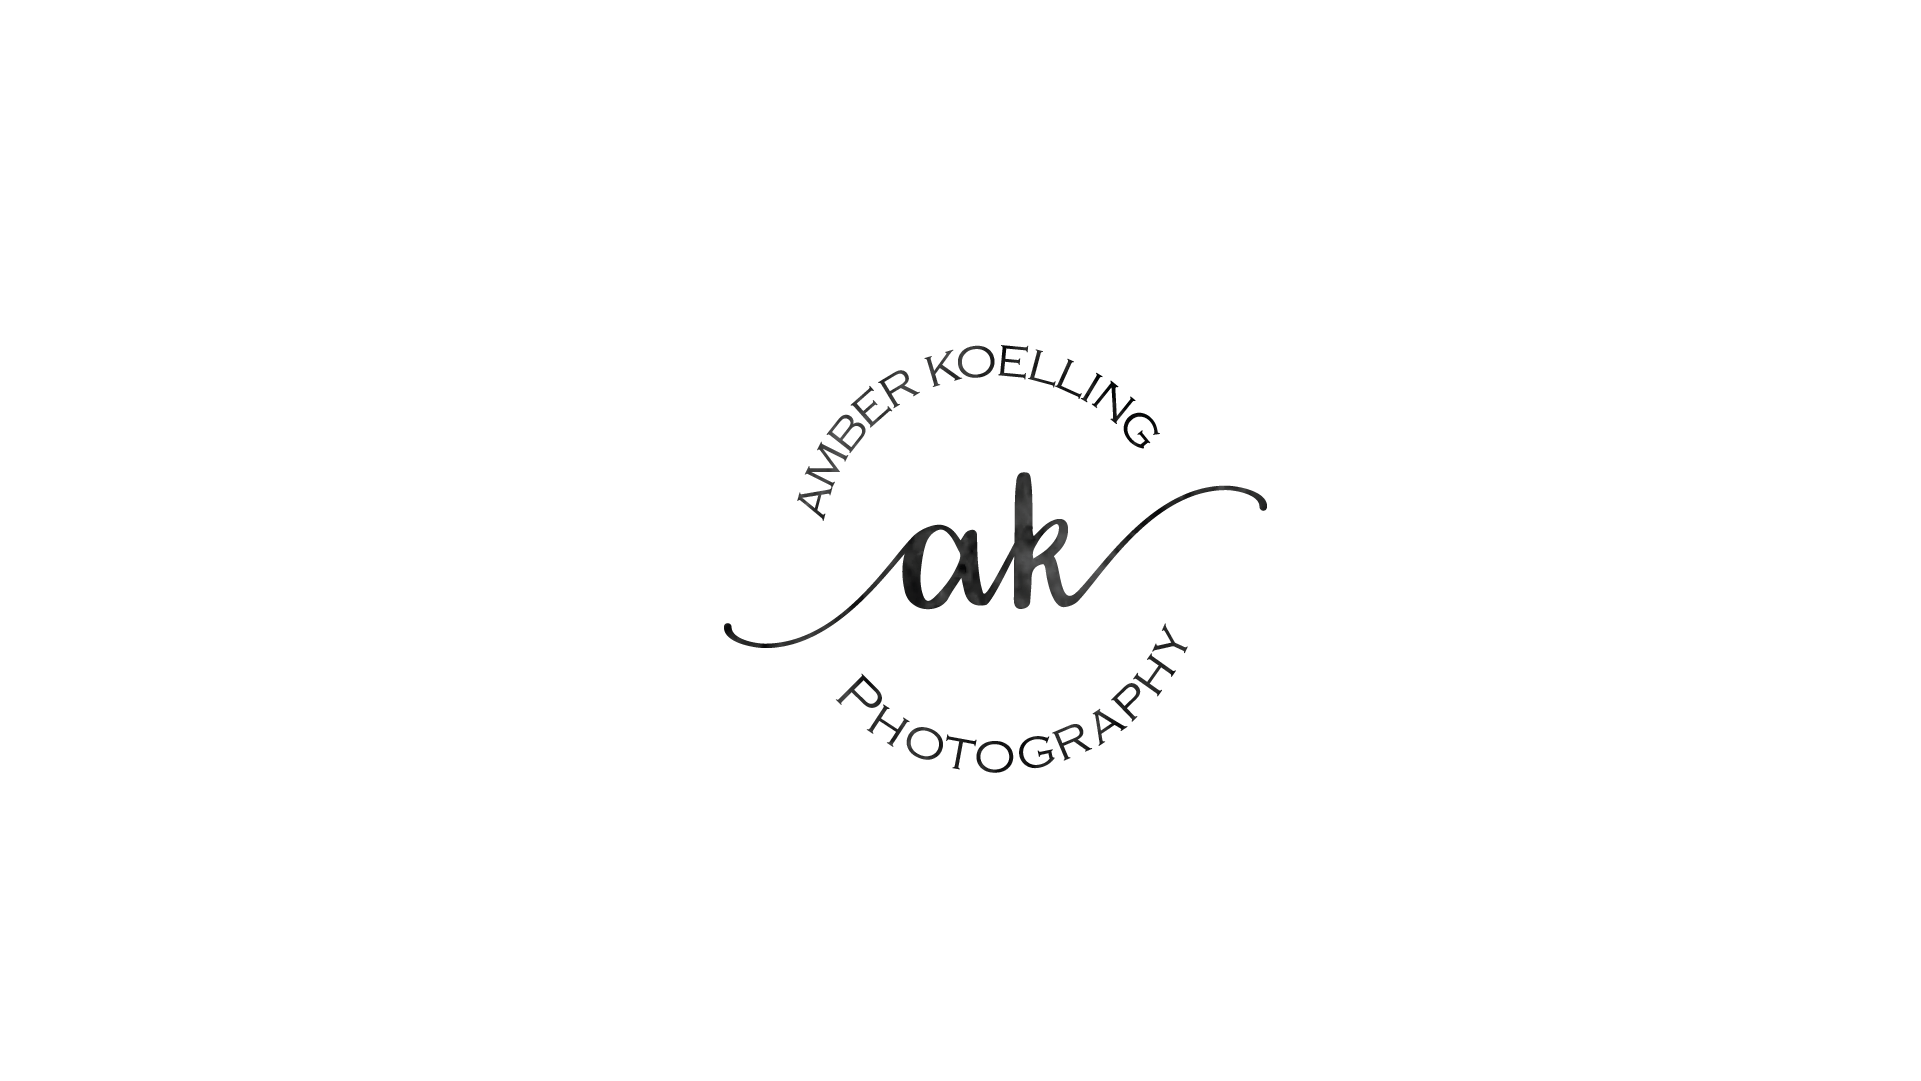 Amber Koelling Photography